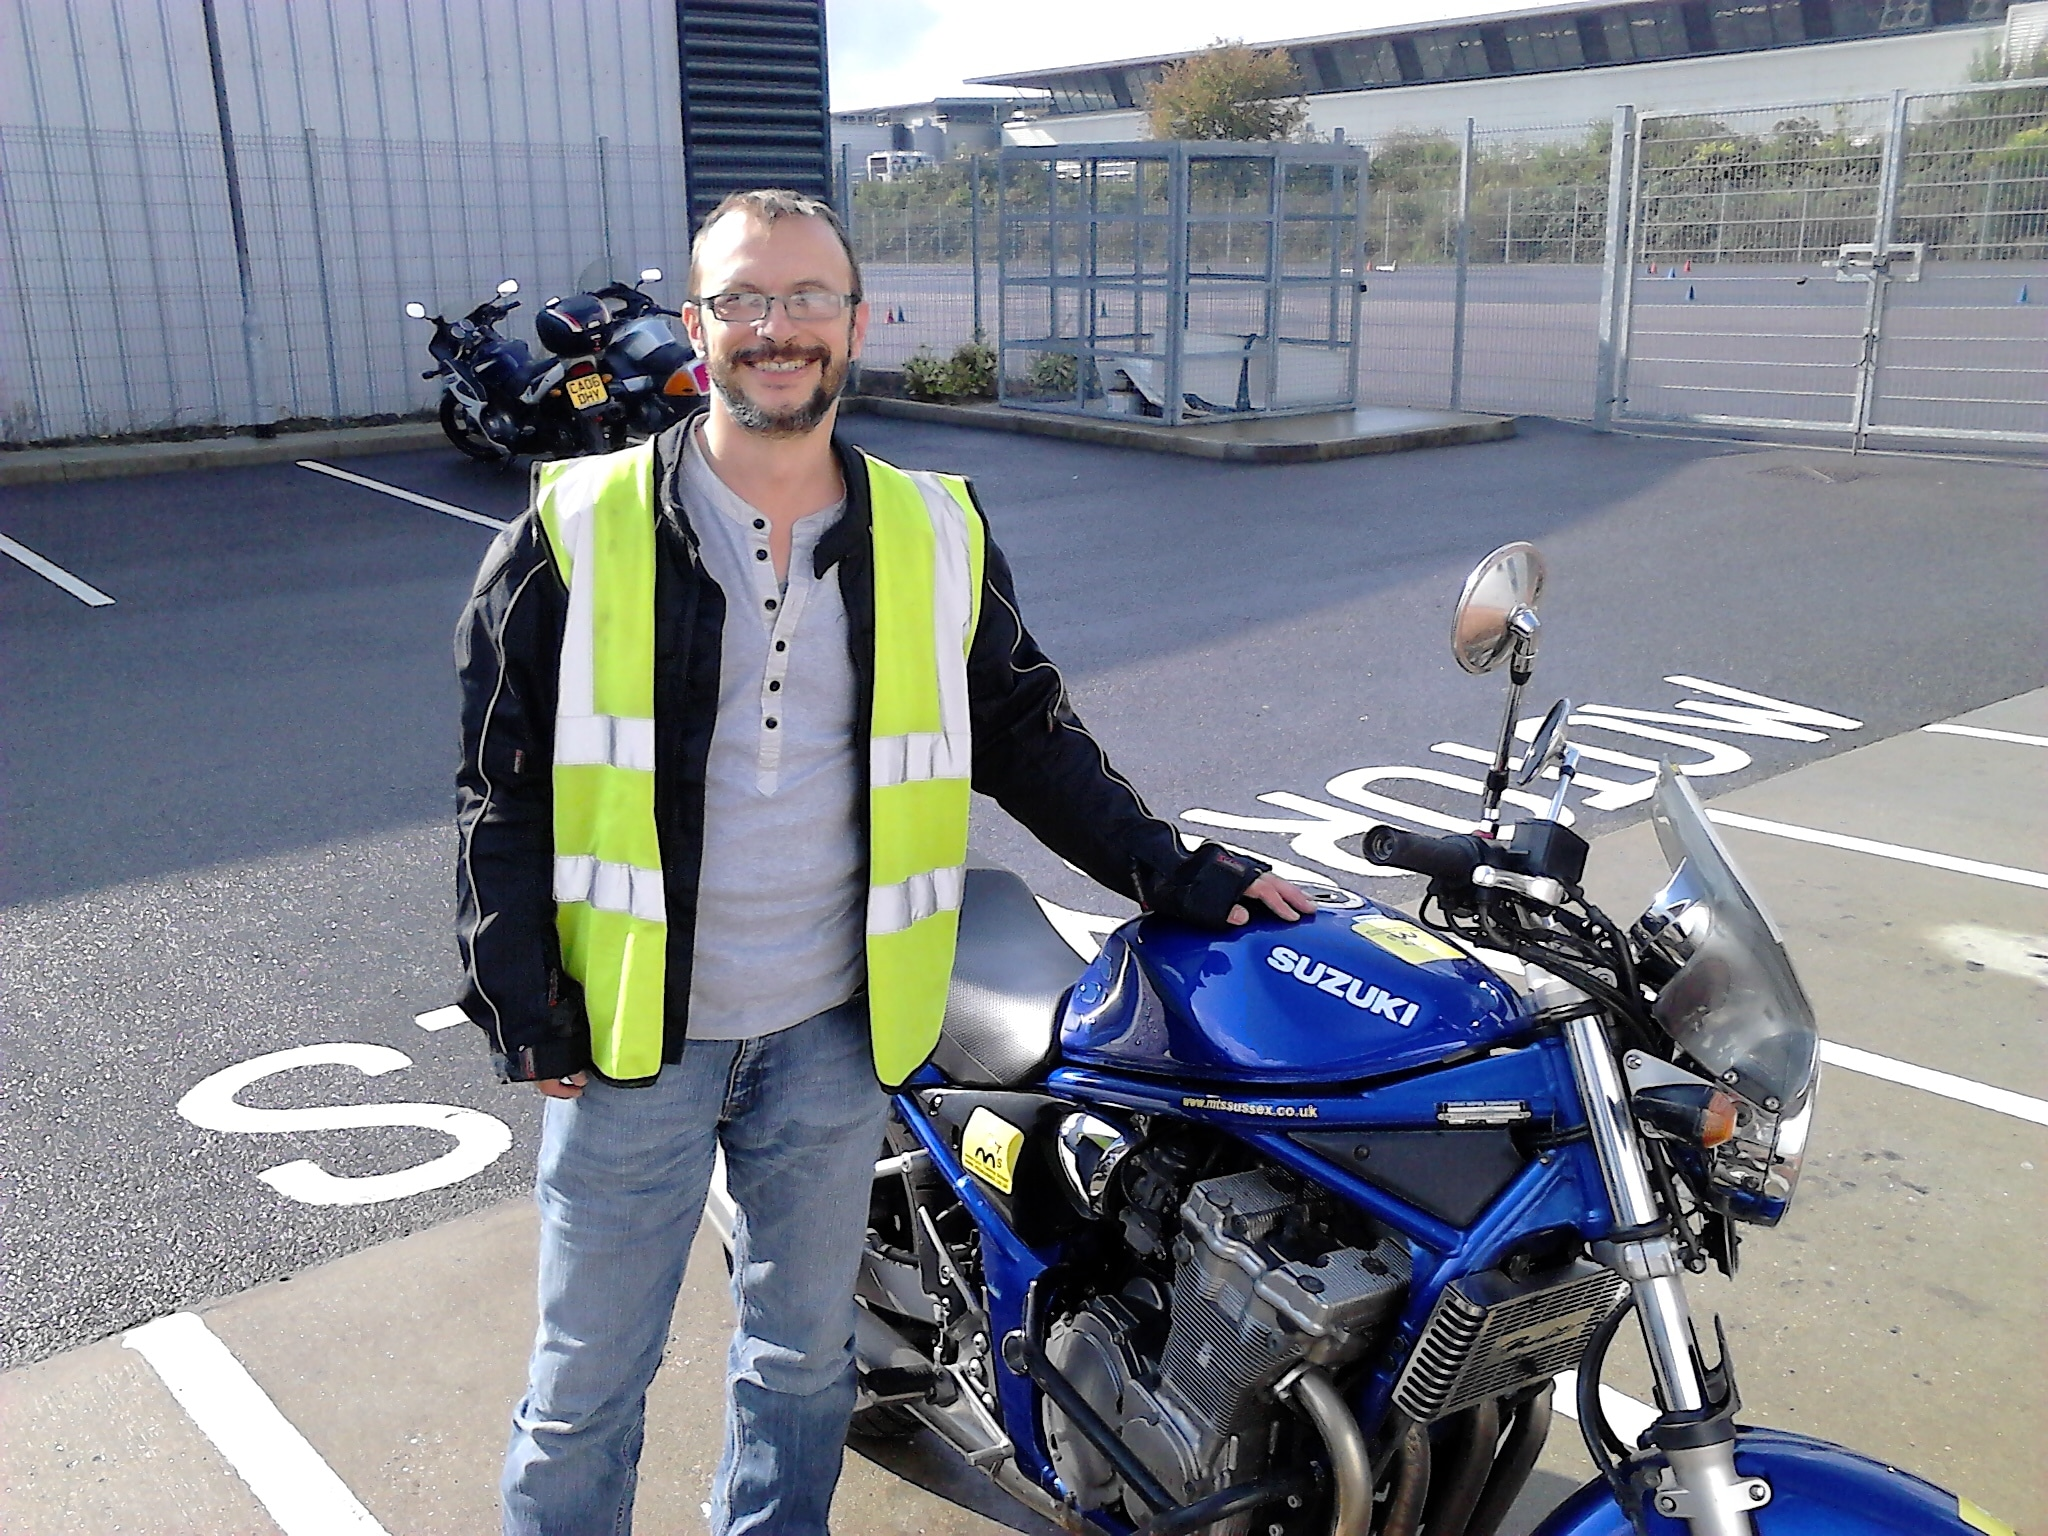 Dennis from Surrey proud to have his full motorbike licence